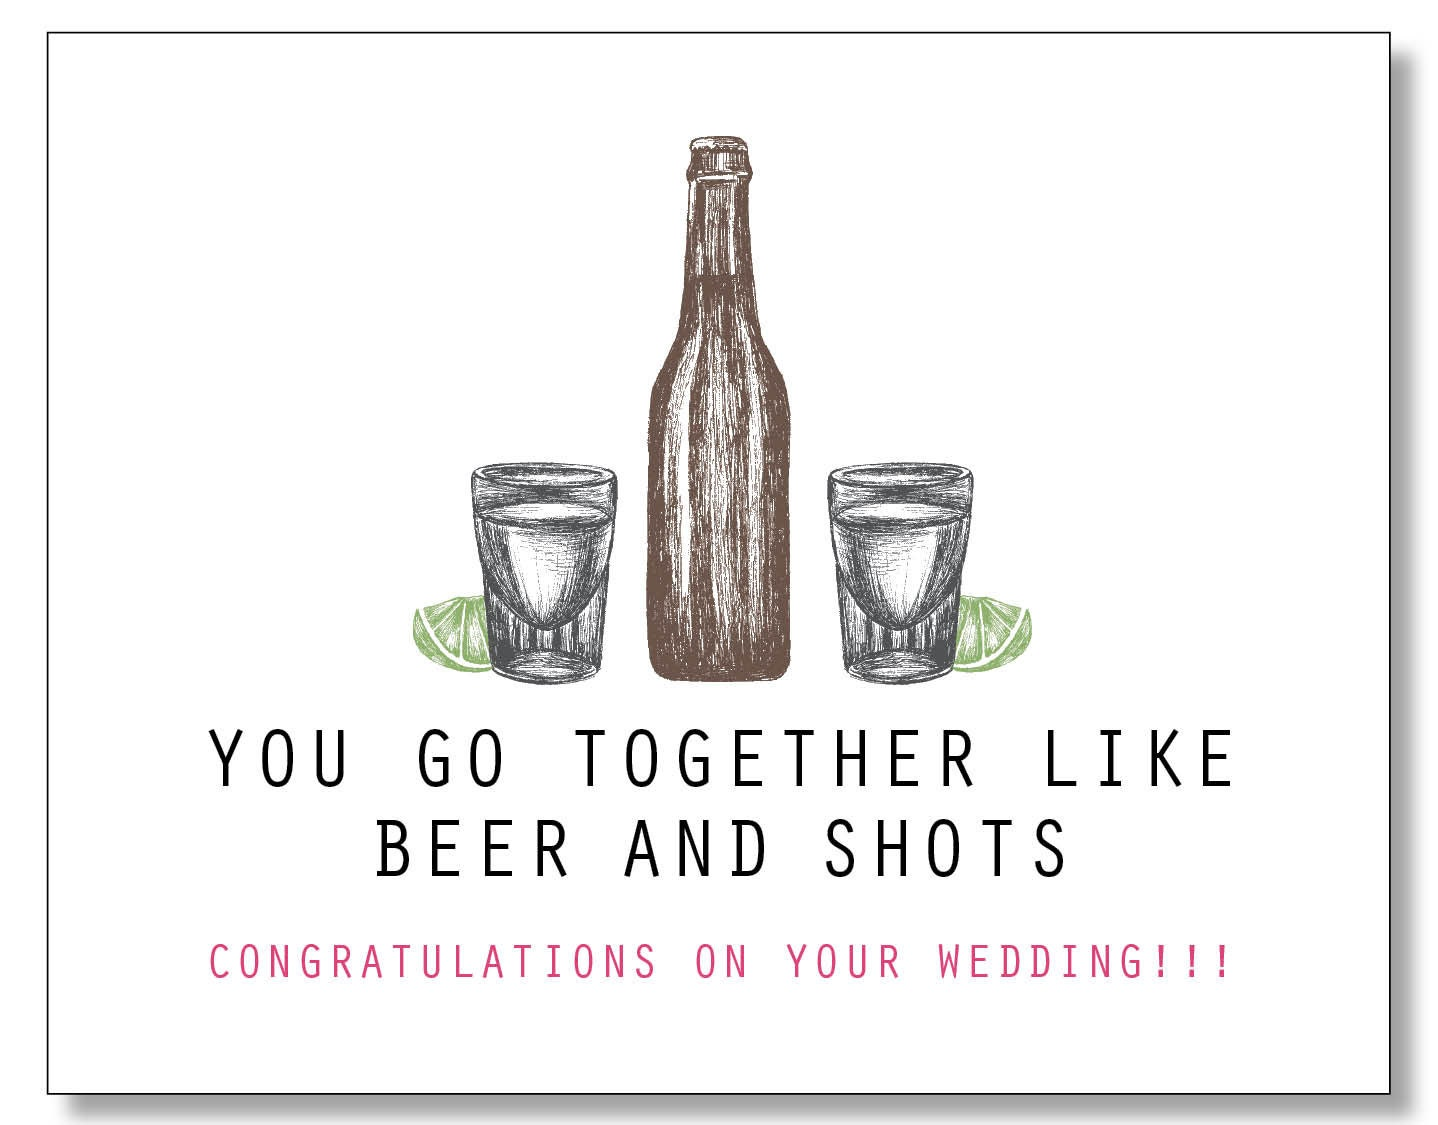 Funny marriage greetings image collections greetings card design funny congratulations on your wedding veenvendelbosch m4hsunfo